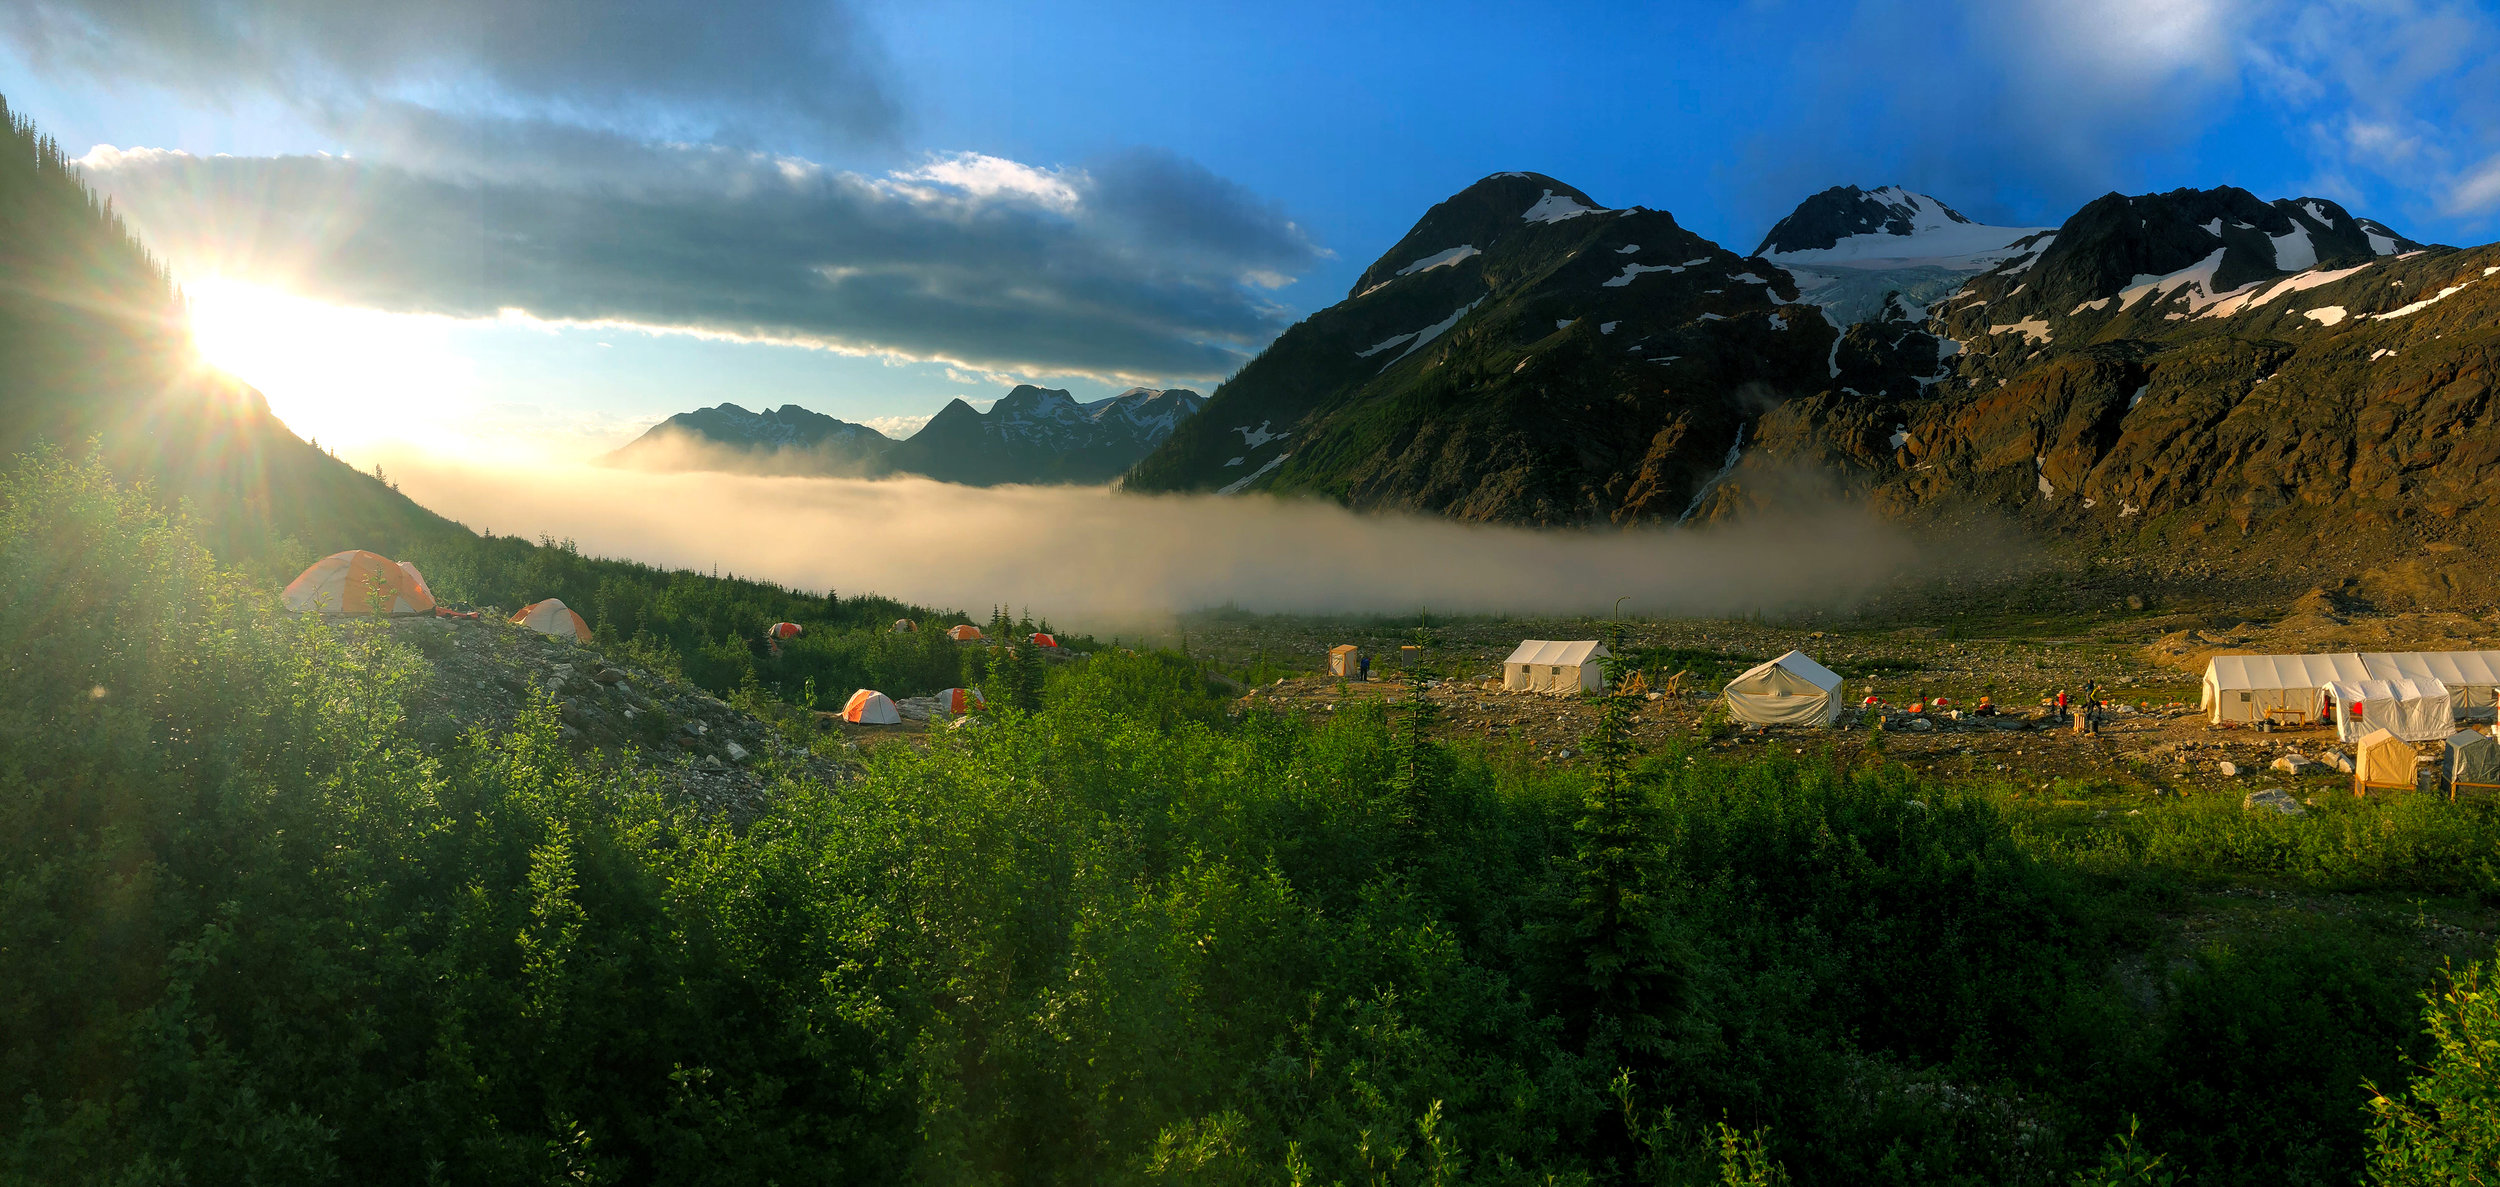 Morning fog rolling into basecamp, ultimately filling the whole valley floor. This fog burned away shortly afterwards, but was a precursor to weather that produced lightning, thunder and hail later that day. Photo: Ray Hope.